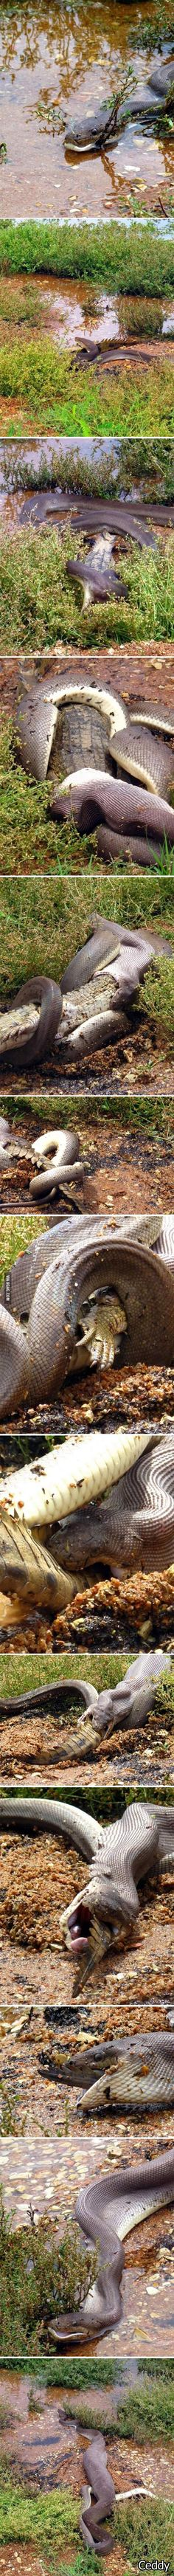 Python devours croc. Wow. that is just a little bit scary!!!!